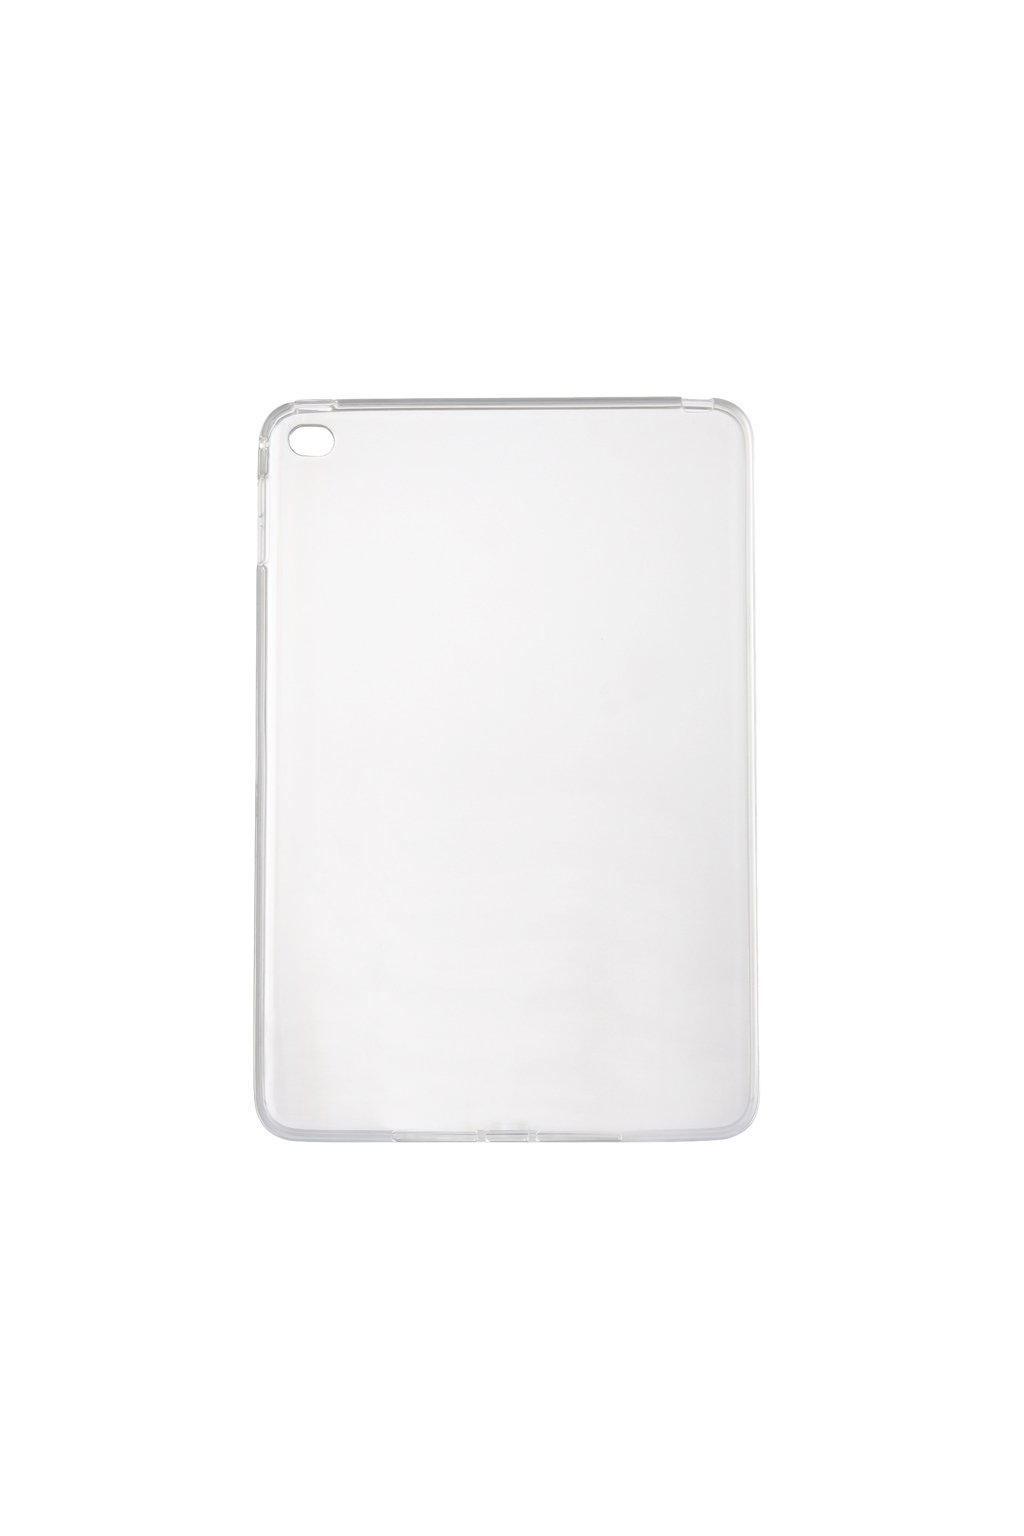 Pouzdro TPU Apple iPad mini (2019)/ mini 4, transparentní